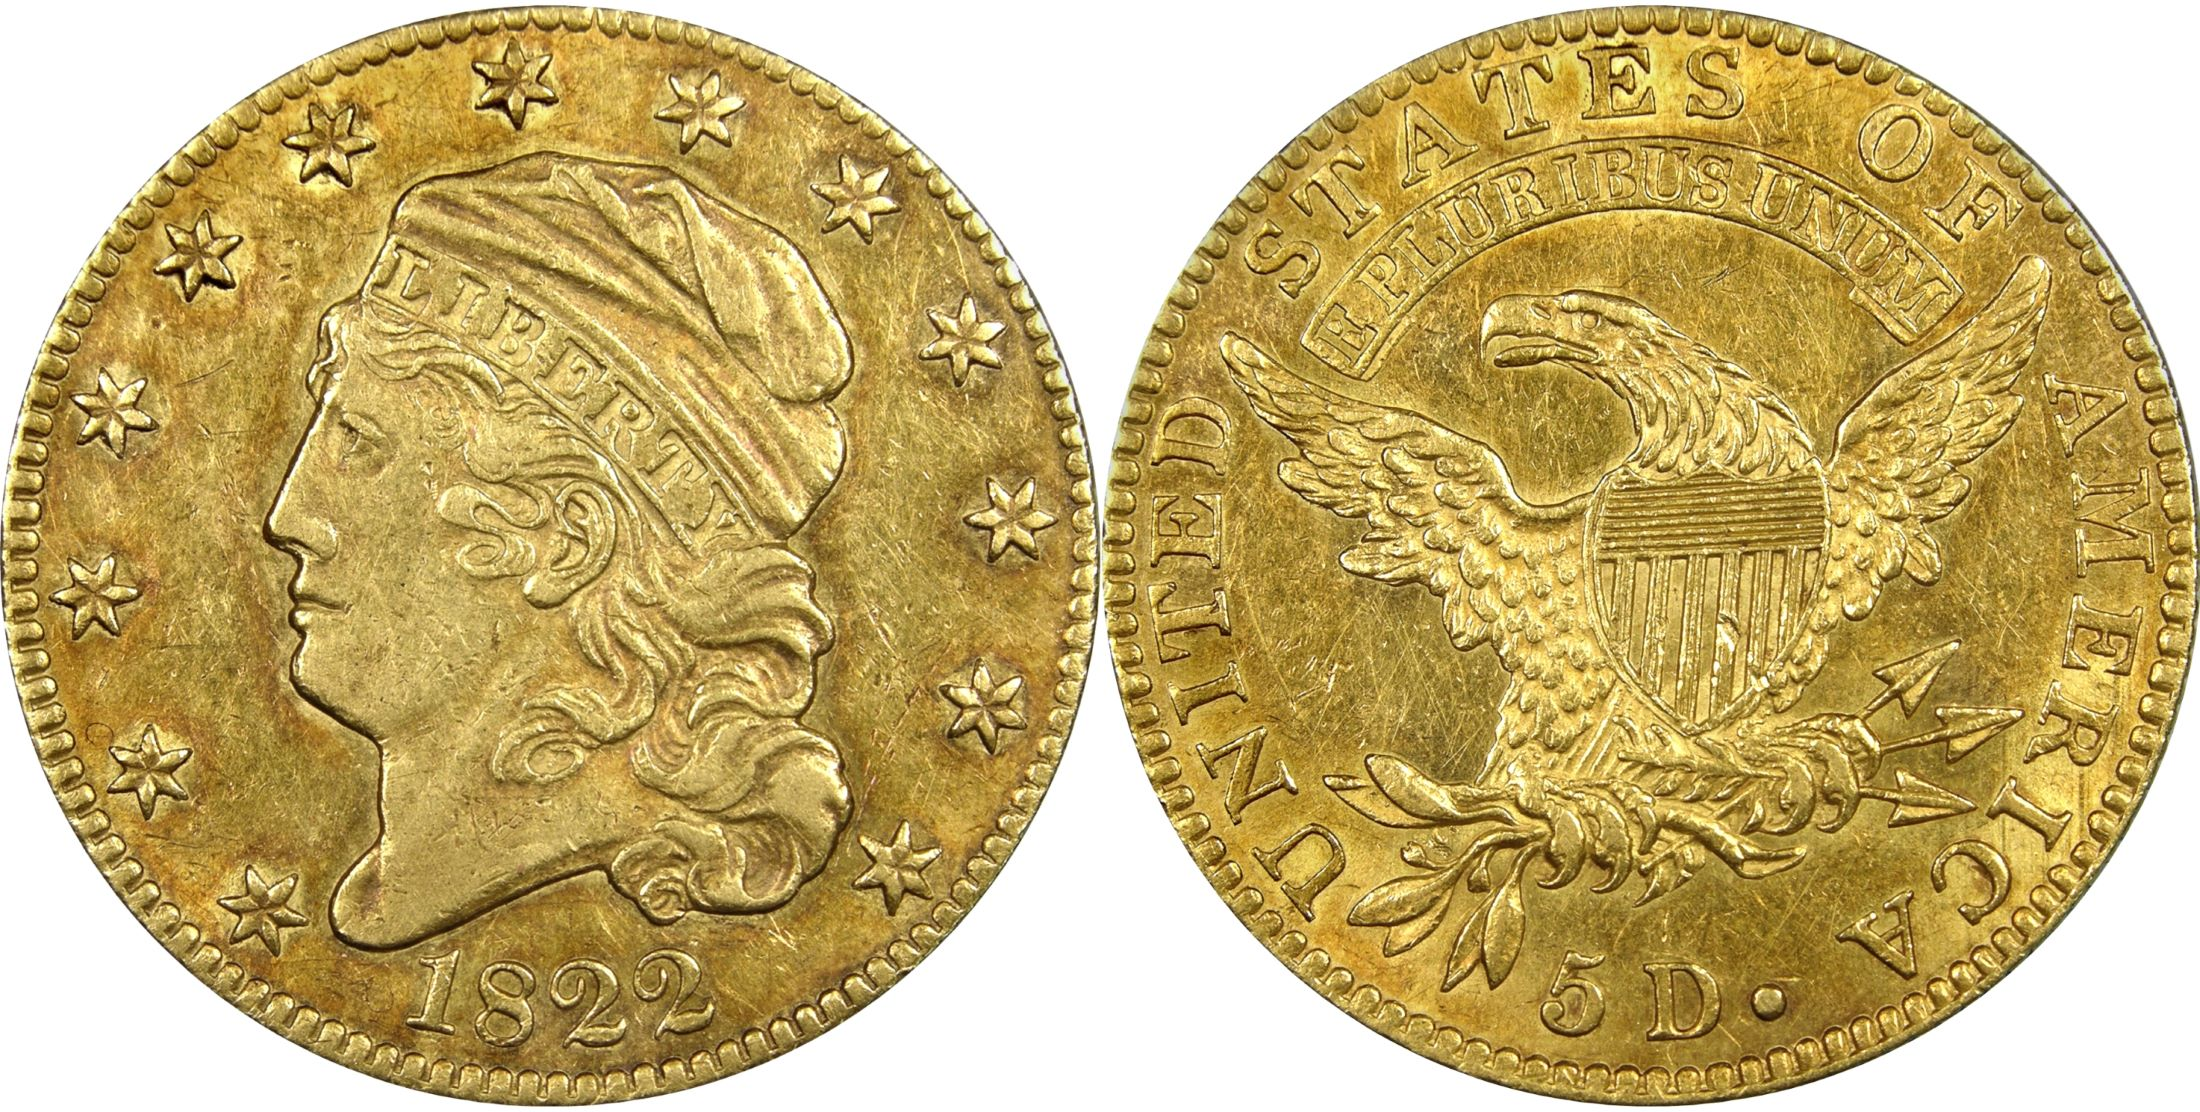 Image courtesy of the National Numismatic Collection at the Smithsonian  Institution